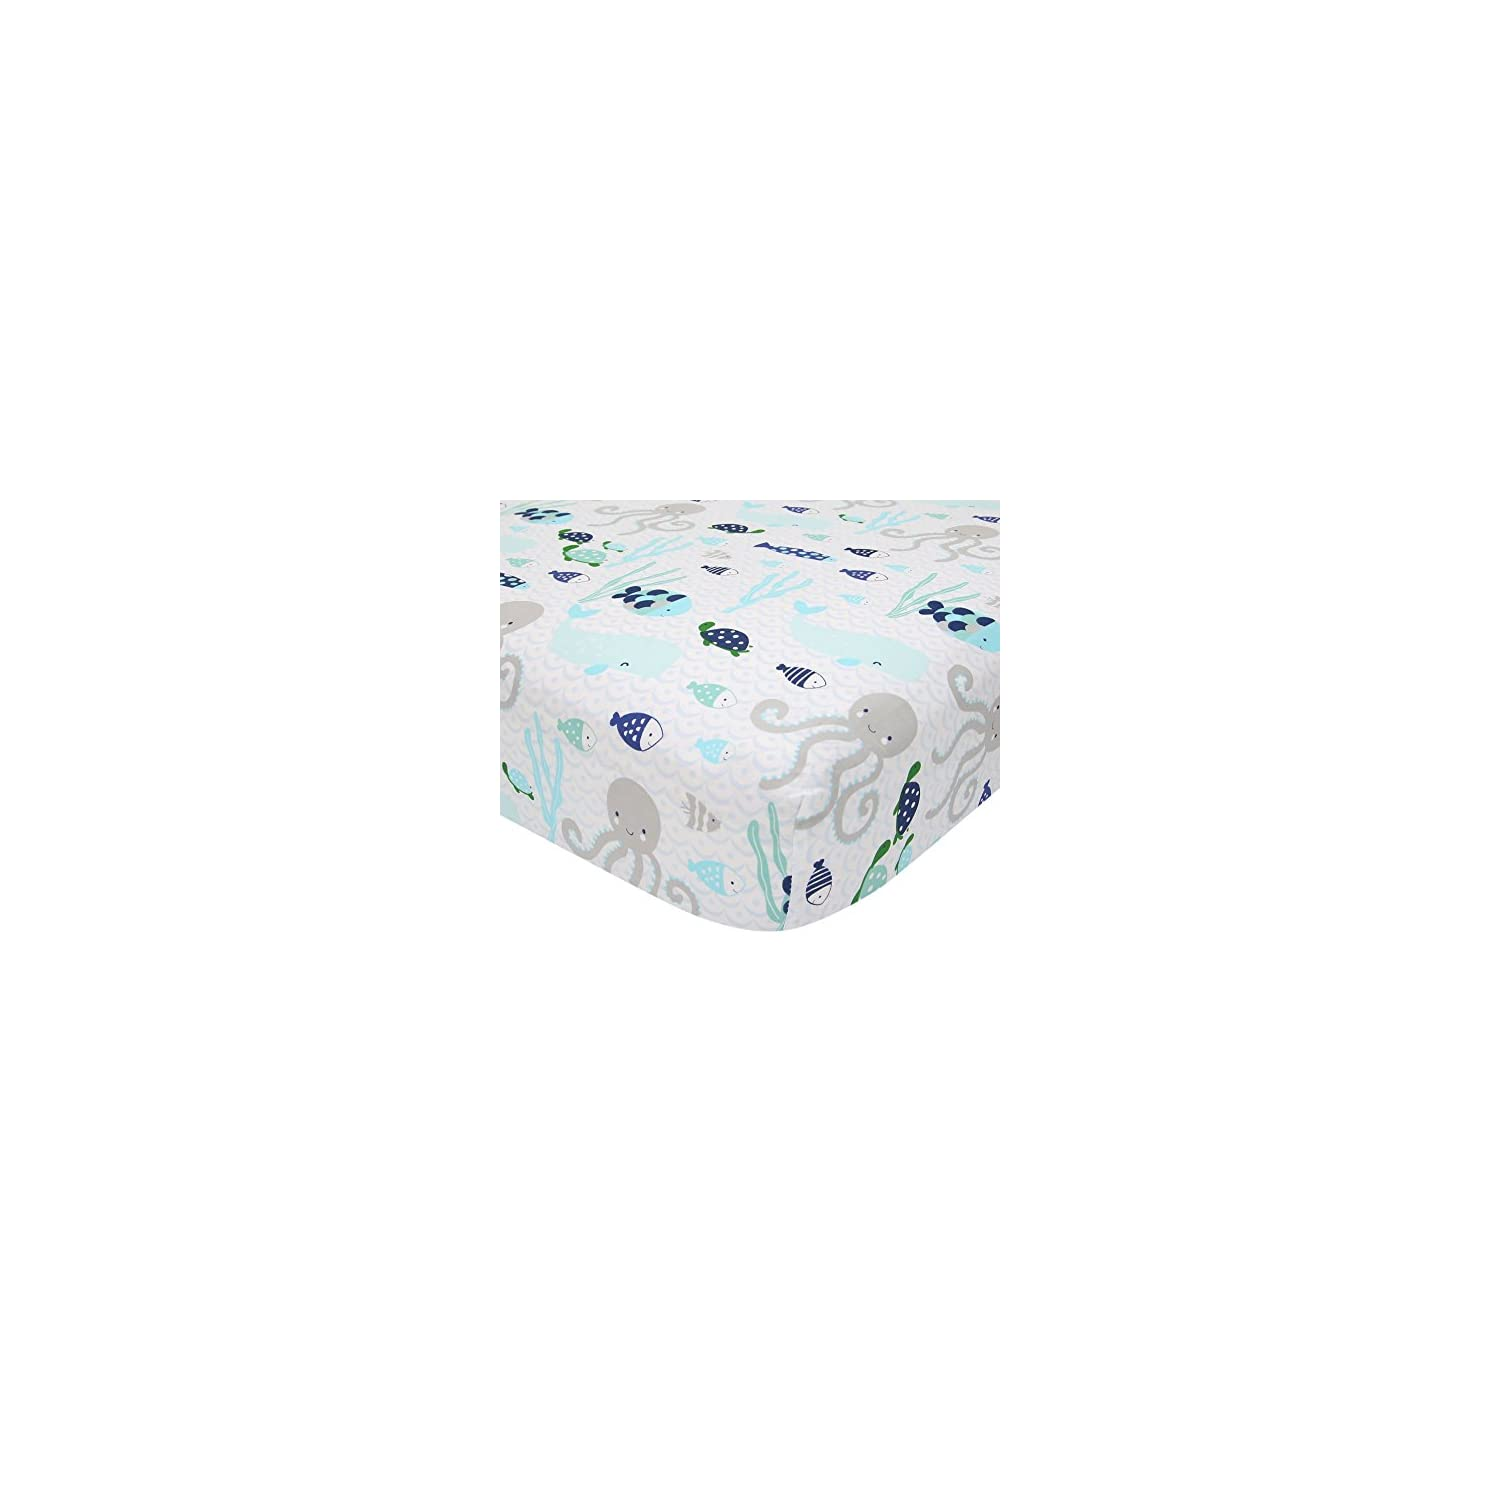 Lambs & Ivy Oceania 100% Cotton Fitted Crib Sheet – White with Blue Nautical/Aquatic Fish and Octopus